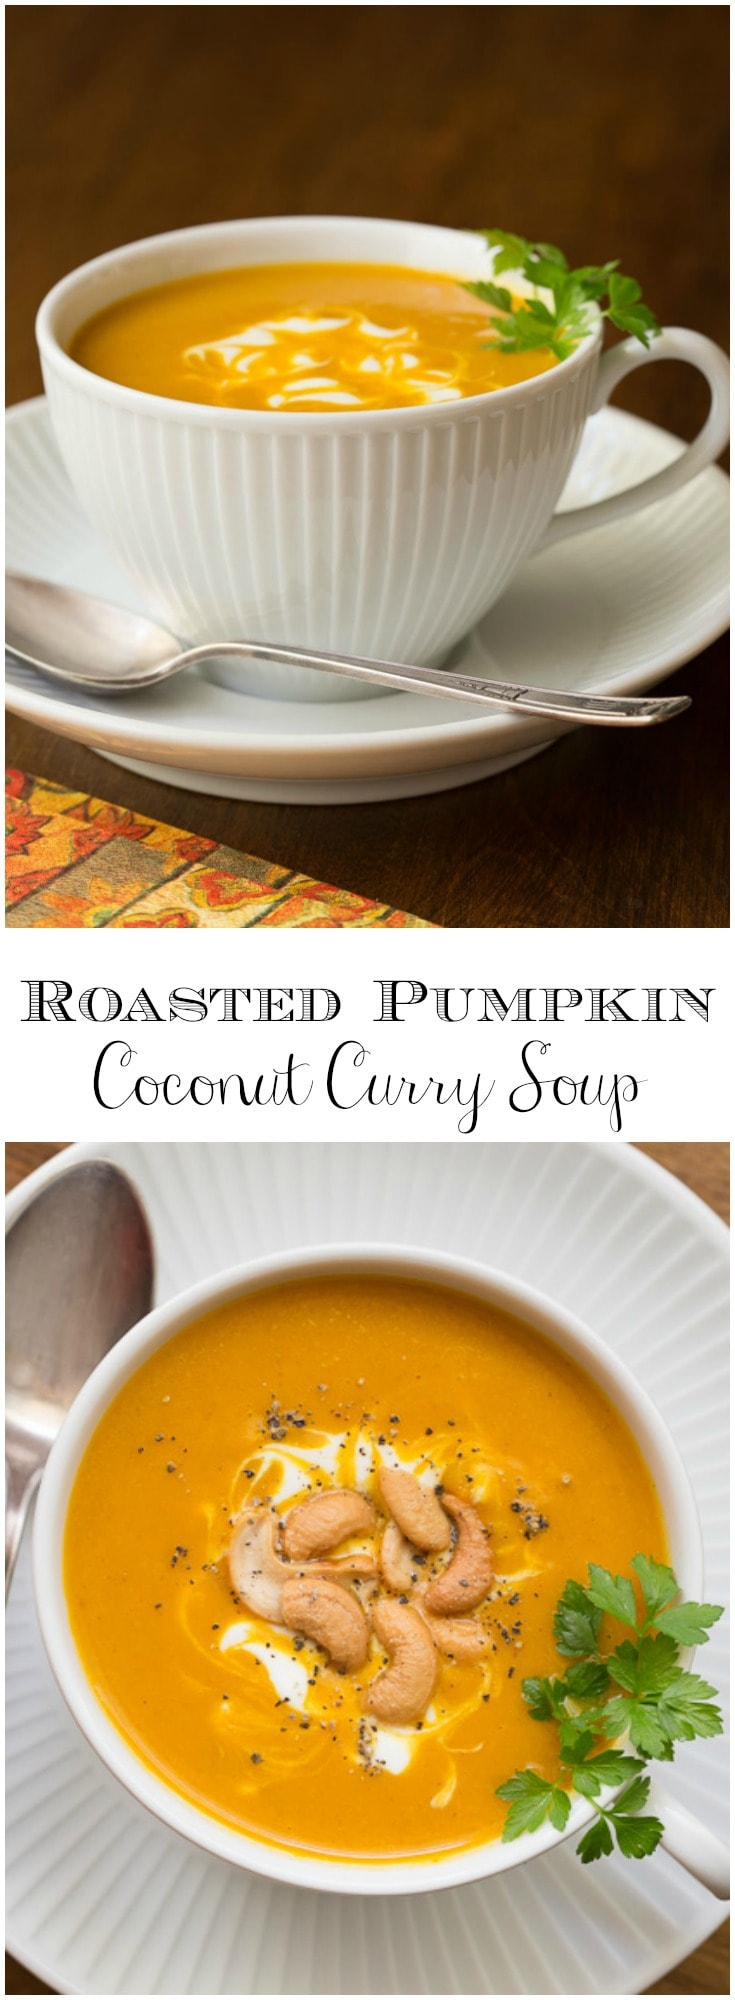 No one will know you cheated just a bit with this Roasted Pumpkin Coconut Curry Soup and honestly, no one will care! It's easy and so delicious!